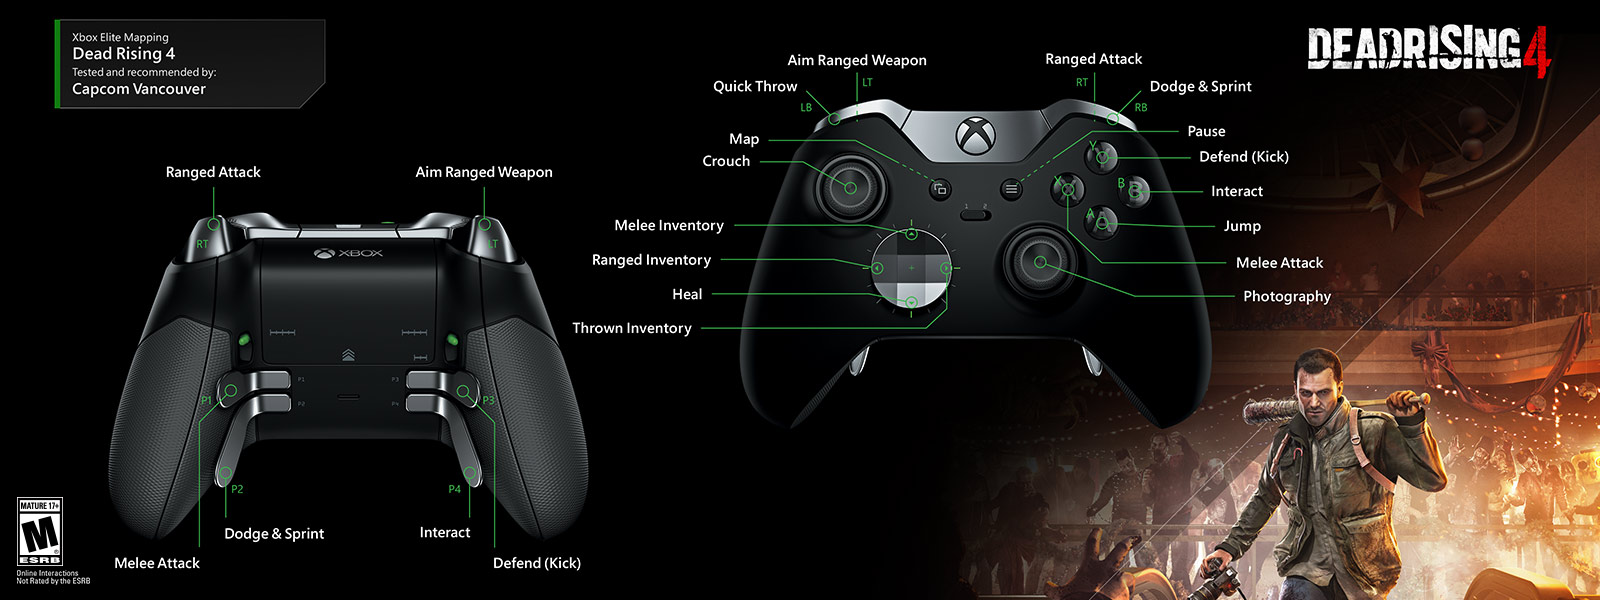 xbox one elite controller manual